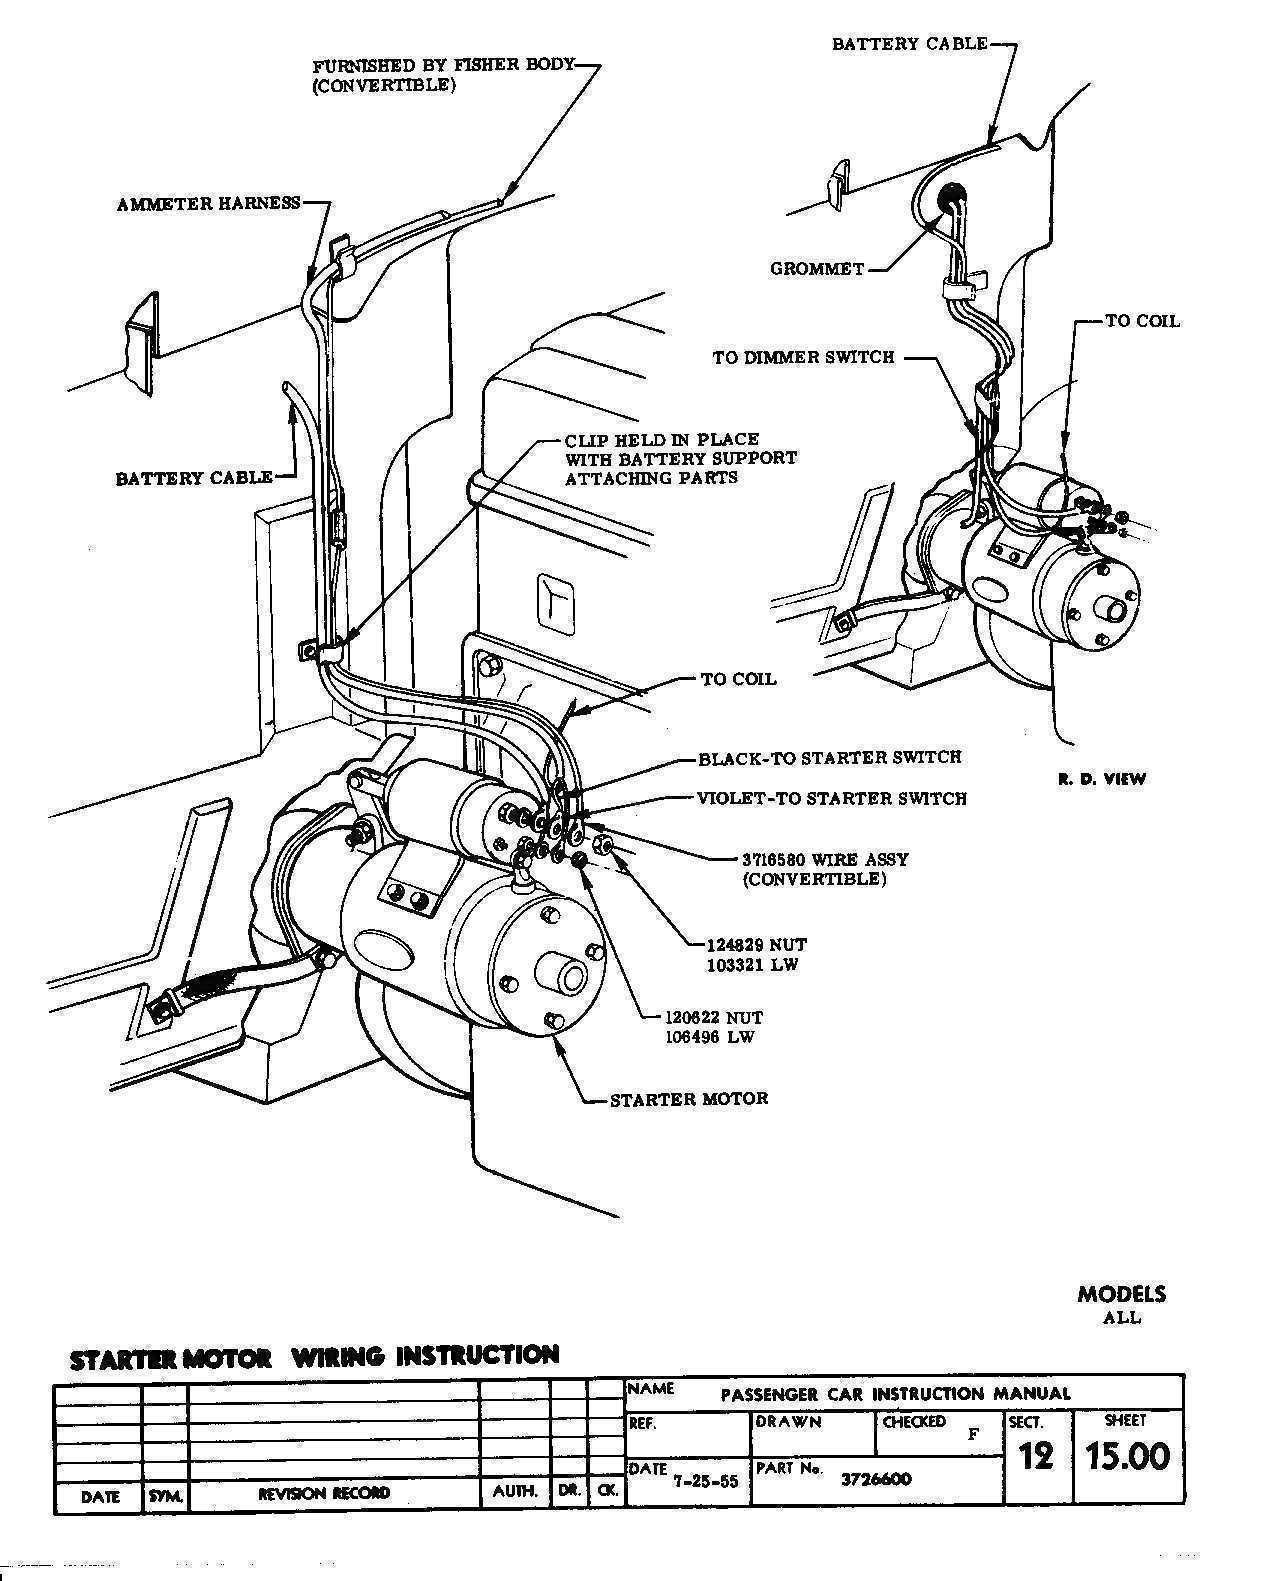 55 Chevy Starter Wiring Diagram Isuzu 3cb1 Engine Wiring Diagram Grabengg Pecipalakaw Madfish It